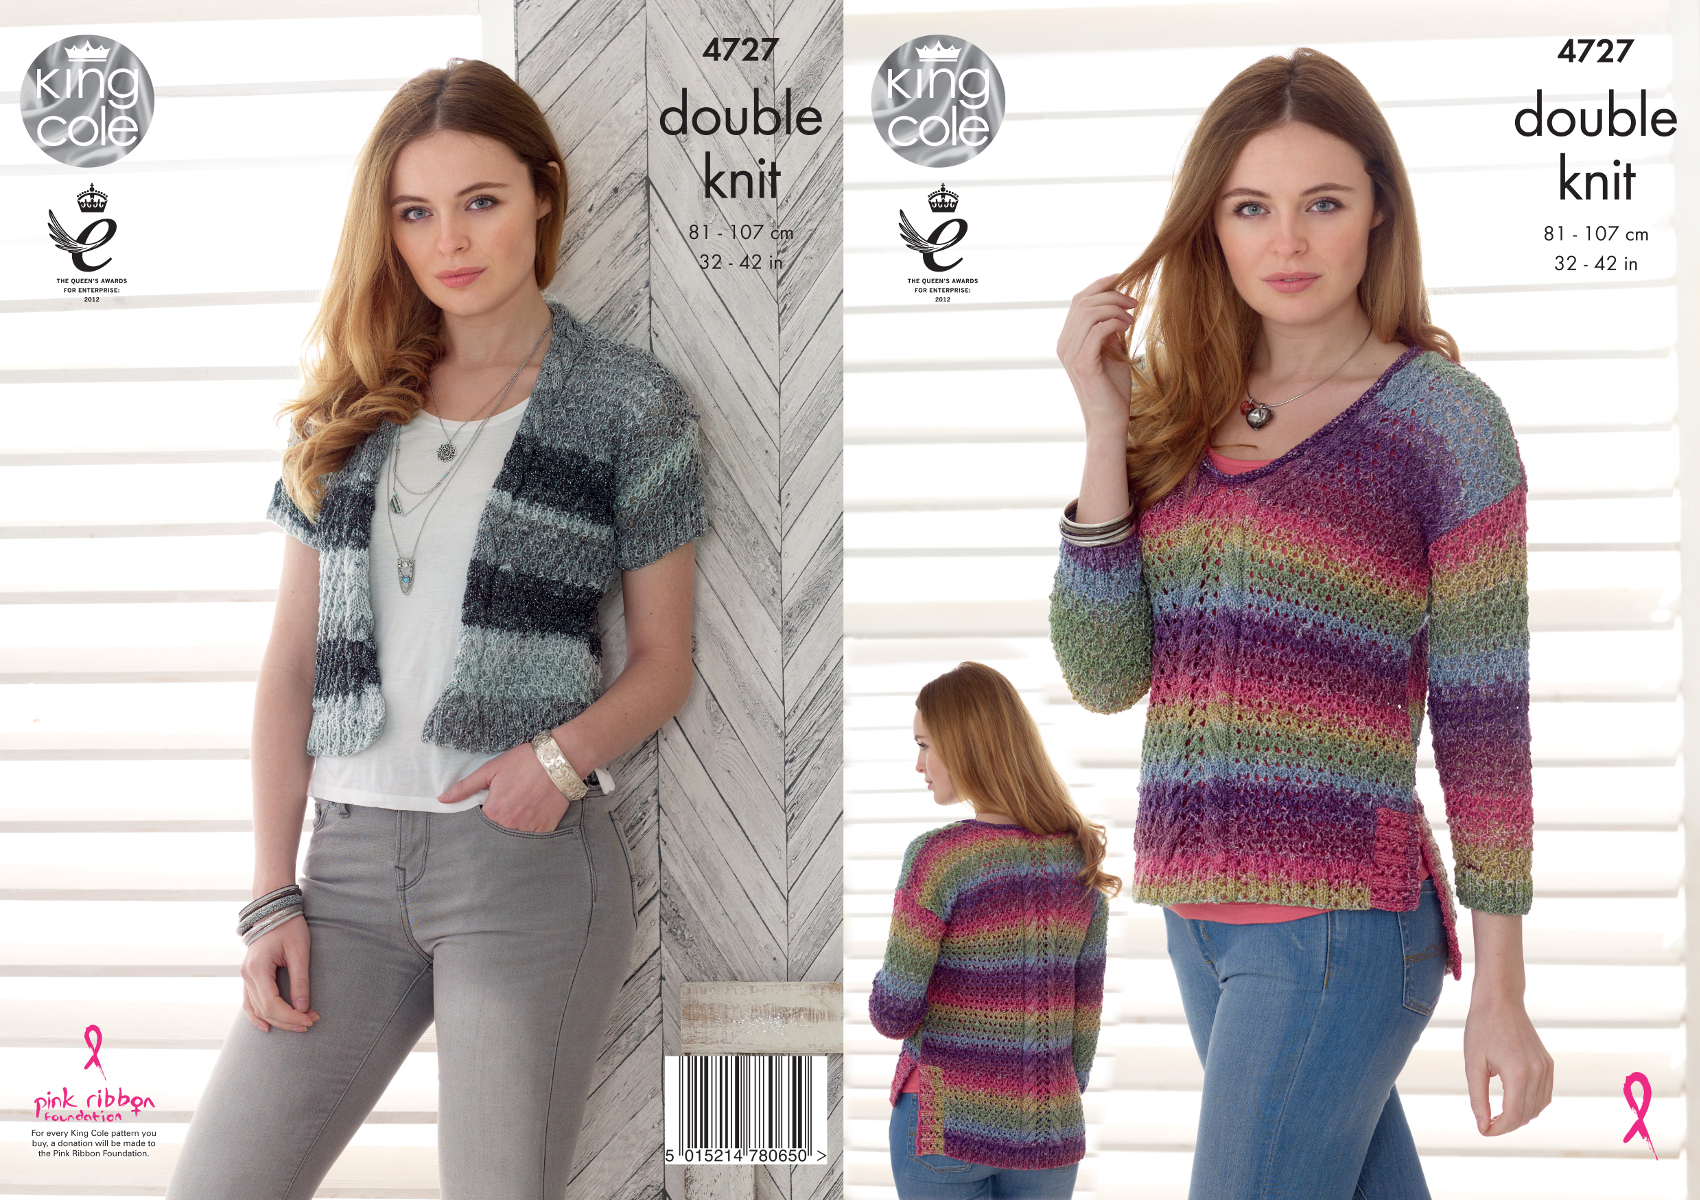 7aeb62c3537f King Cole Ladies DK Knitting Pattern Lacy Split Hem Jumper Cropped ...